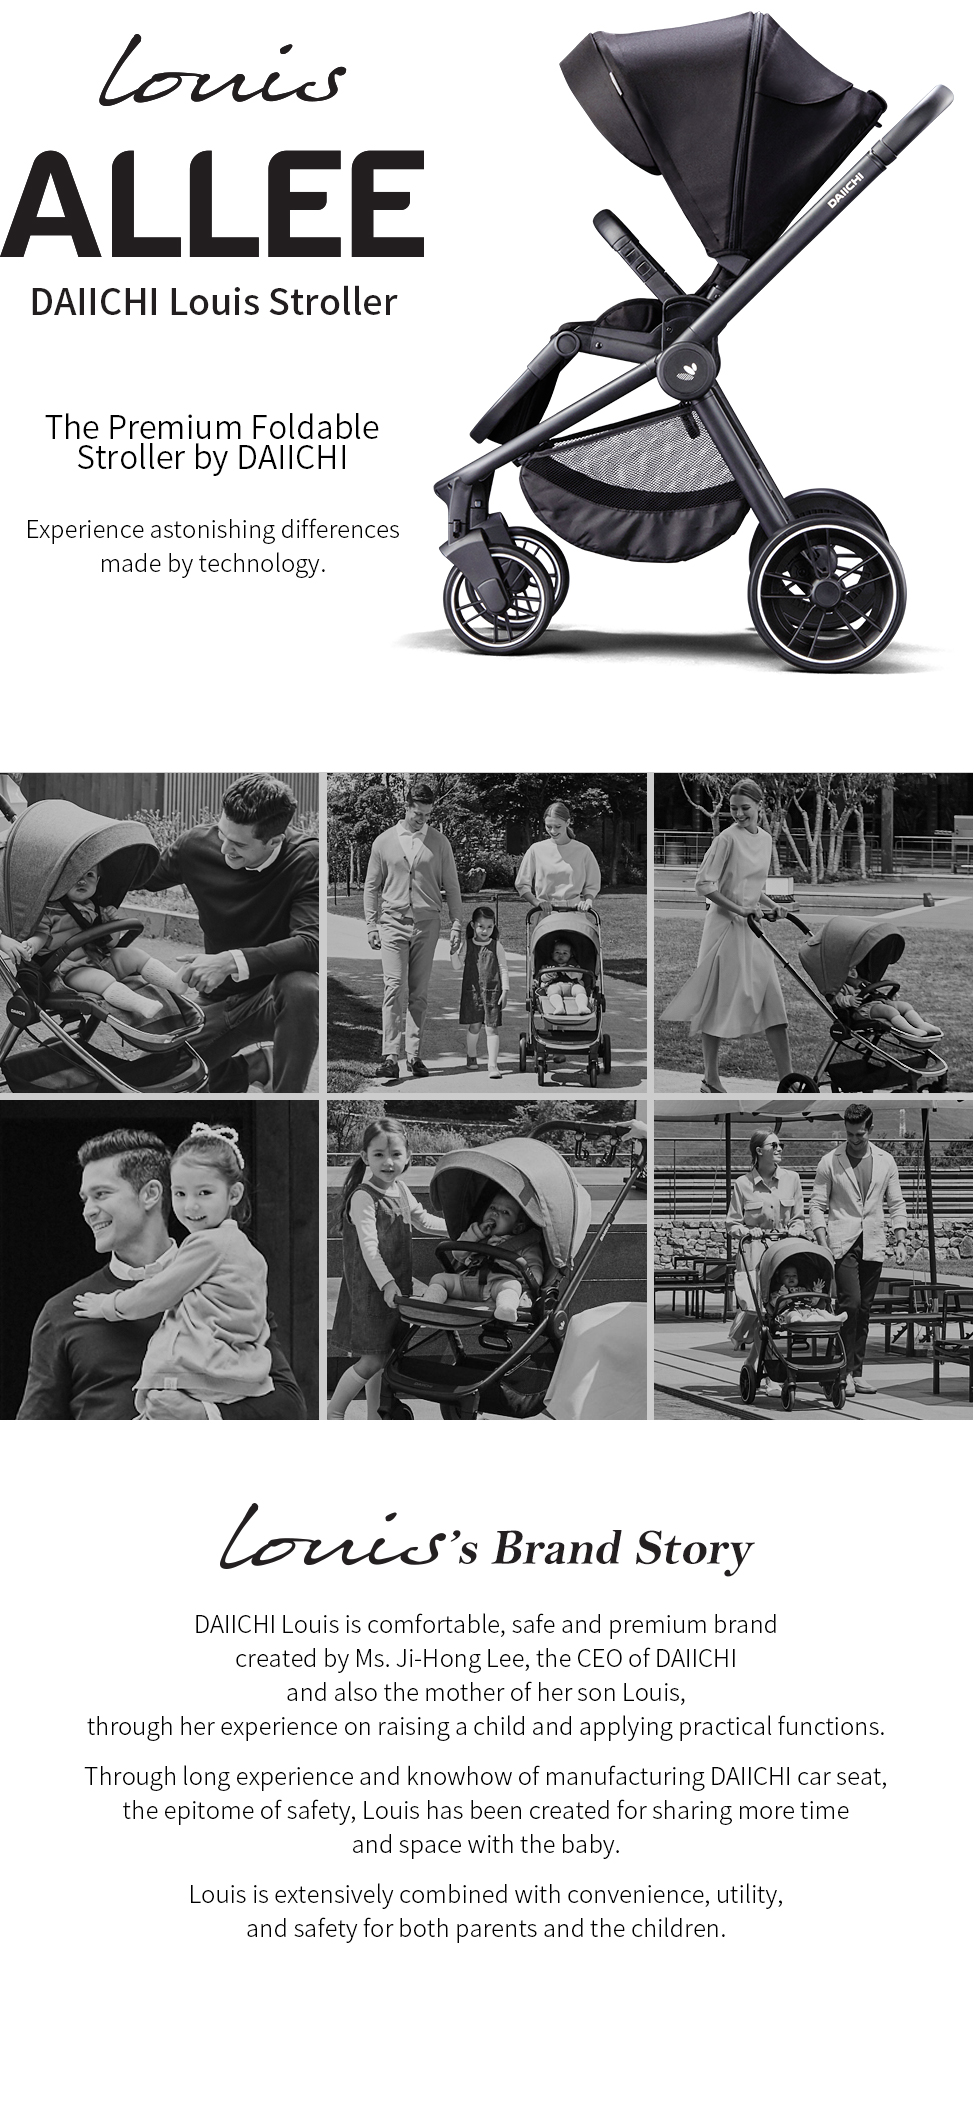 The premium foldable stroller by DAIICHI. DAIICHI Louis is comfortable, safe and premium brand created by Ms. Ji-Hong Lee, the CEO of DAIICHI and also the mother of her son Louis, through her experience on raising a child and applying practical functions.